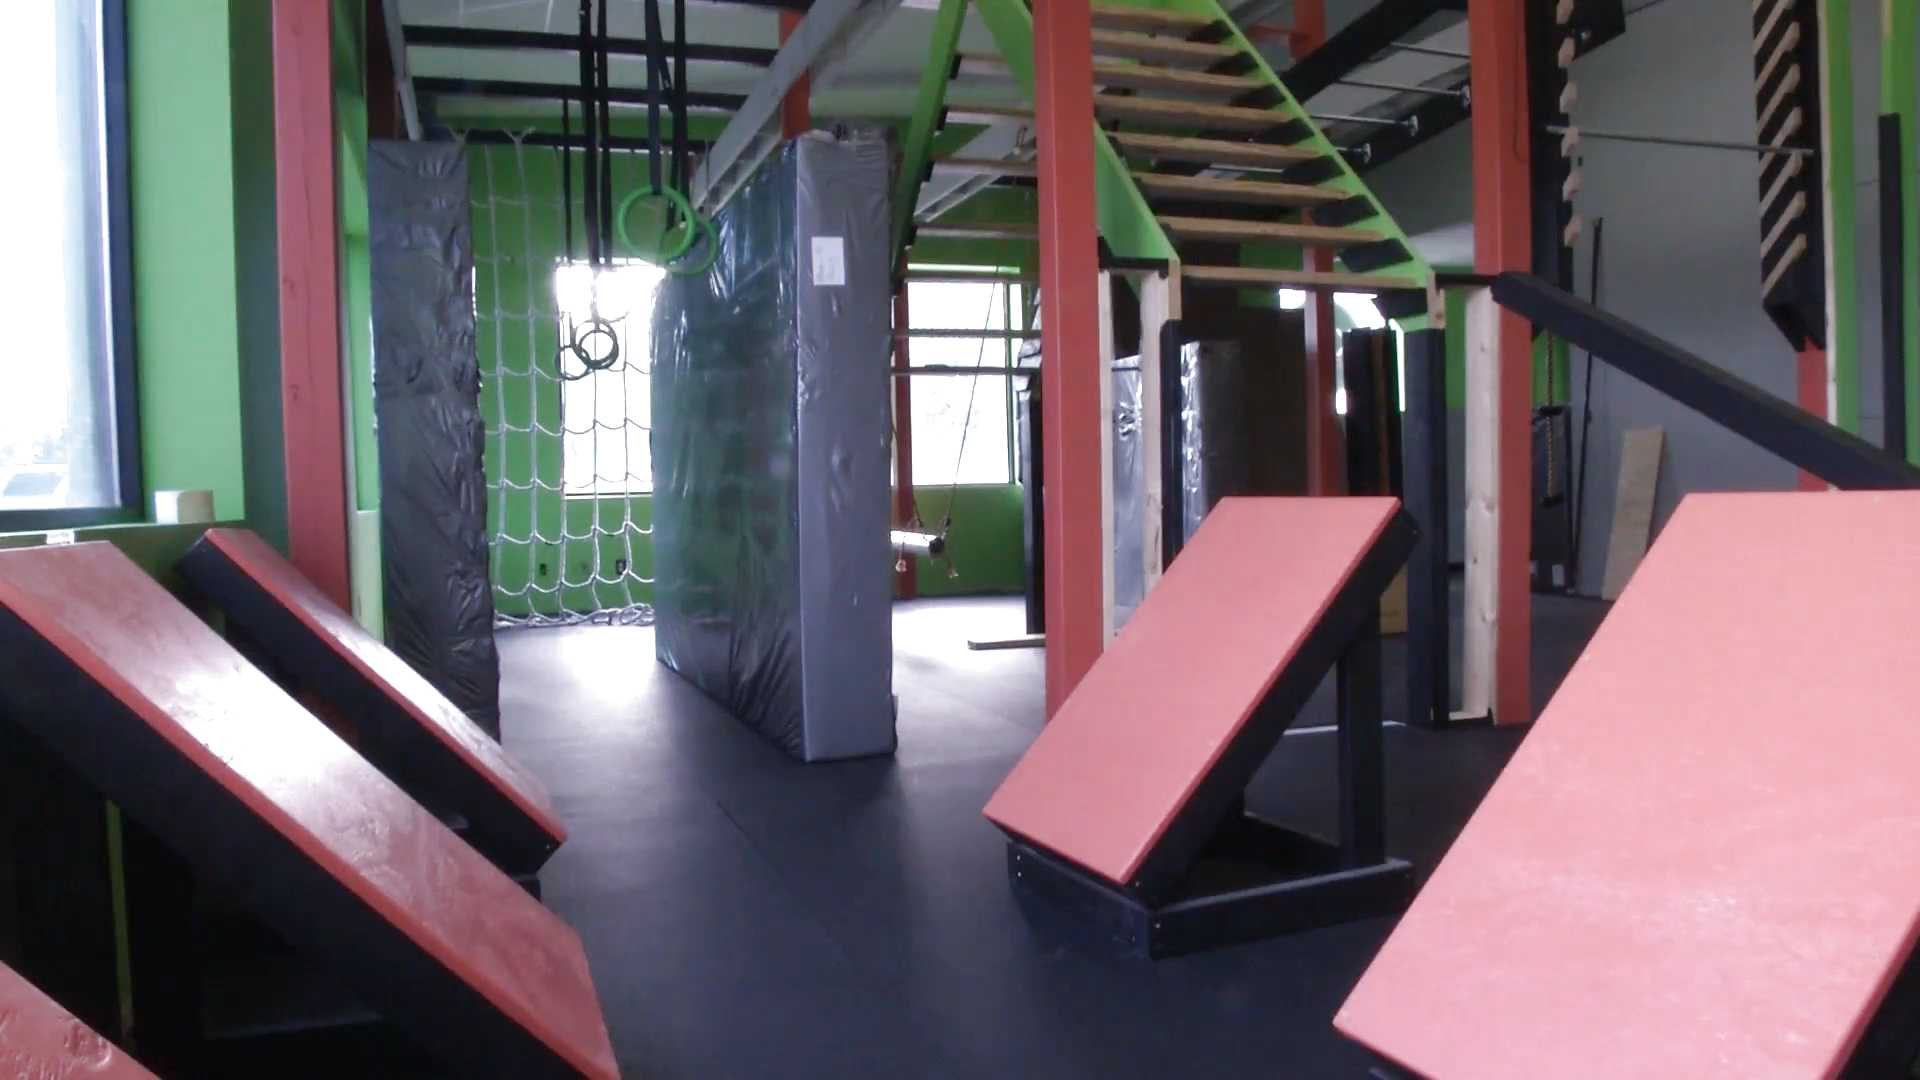 The KOR Komplex is a Ninja Warrior training center and a parkour gym located in St. Charles near Lindenwood University.Photo by Kyle Rainey